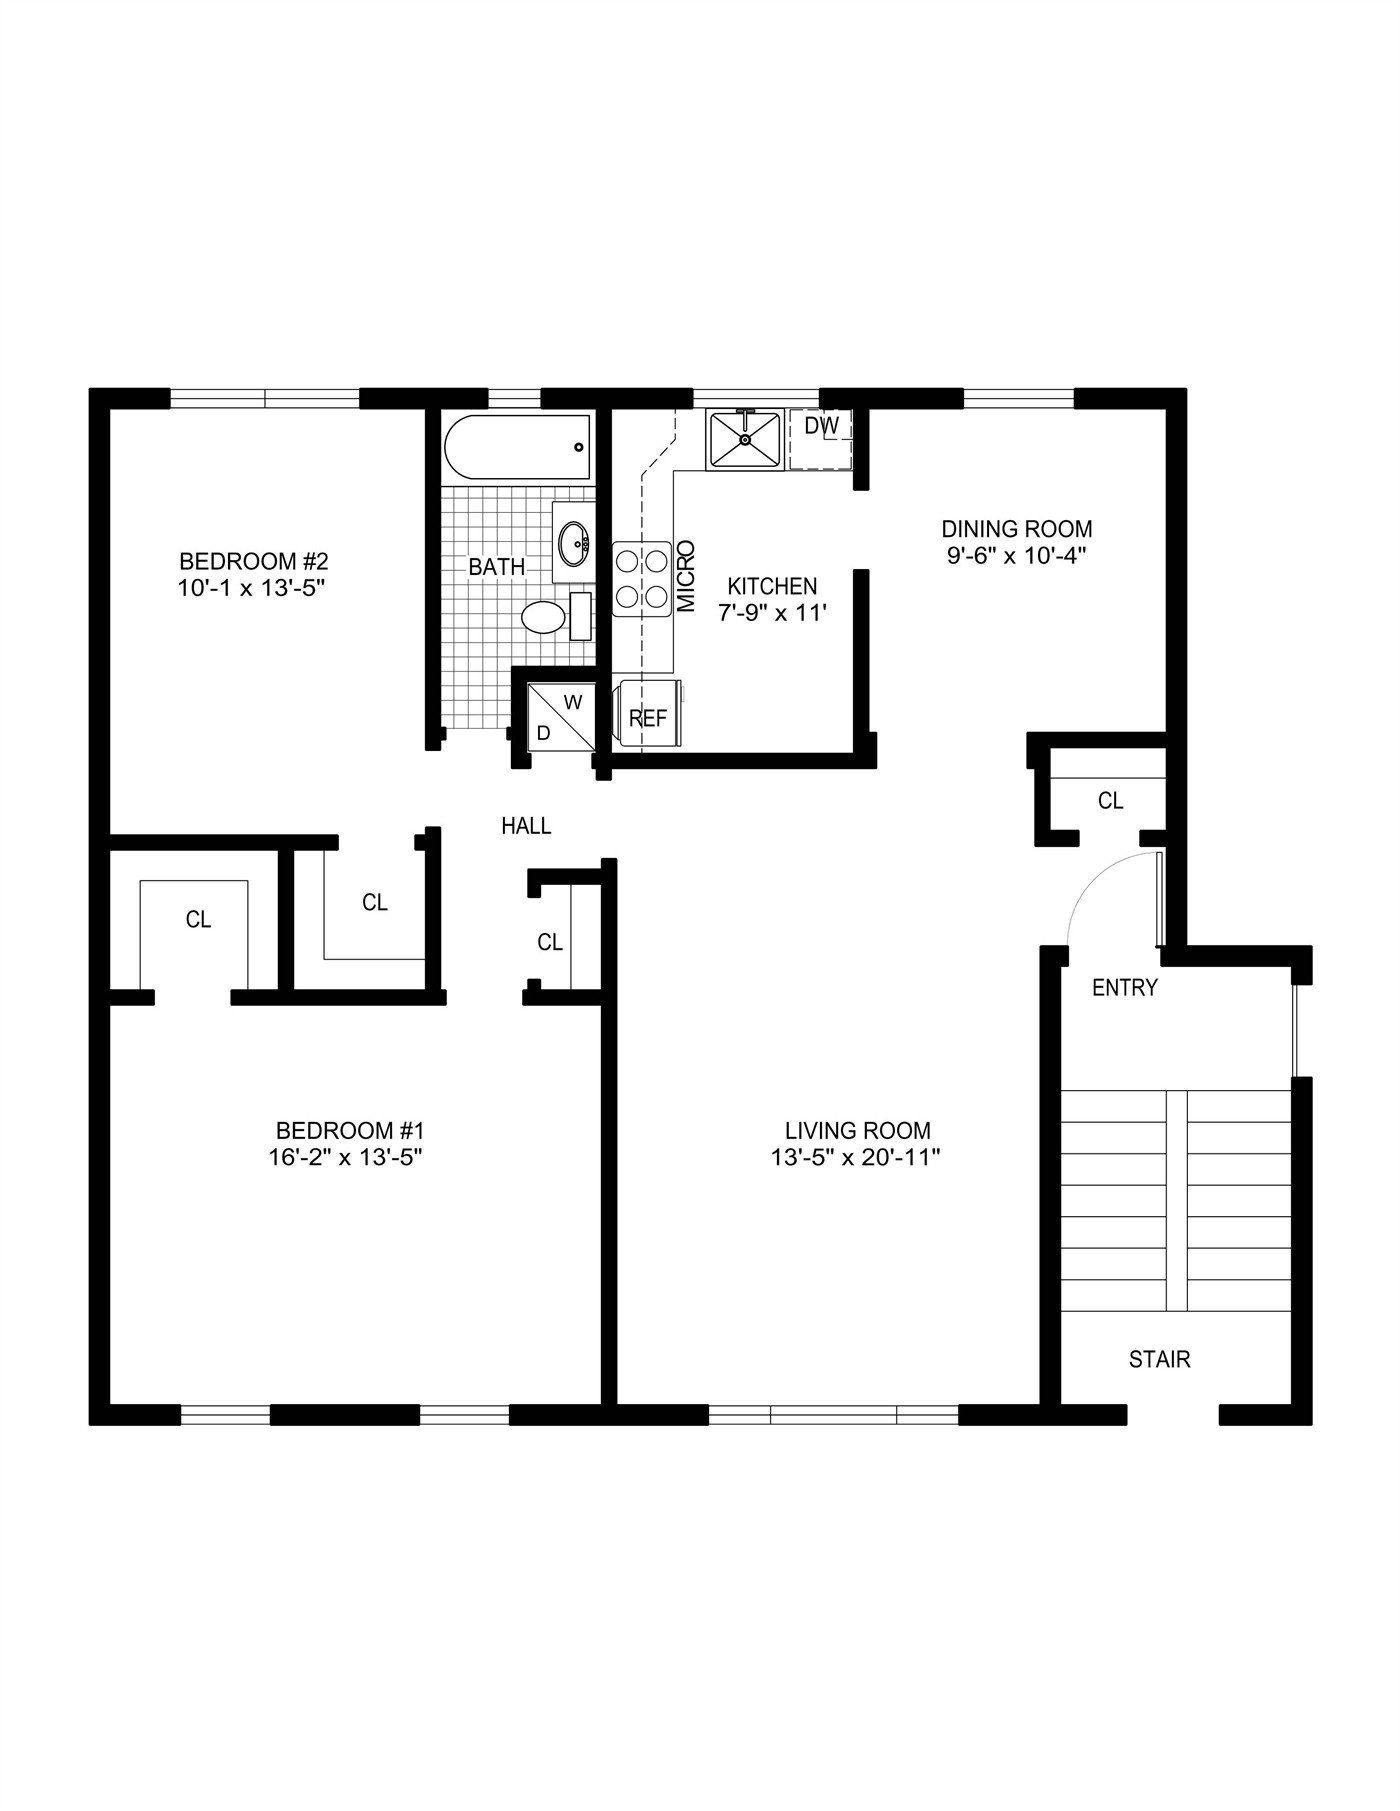 Modern House Floor Plans With Dimensions Simple Floor Plan Design Step Plans With Dimensions Draw Simple Floor Plans House Floor Plans Floor Plan Design